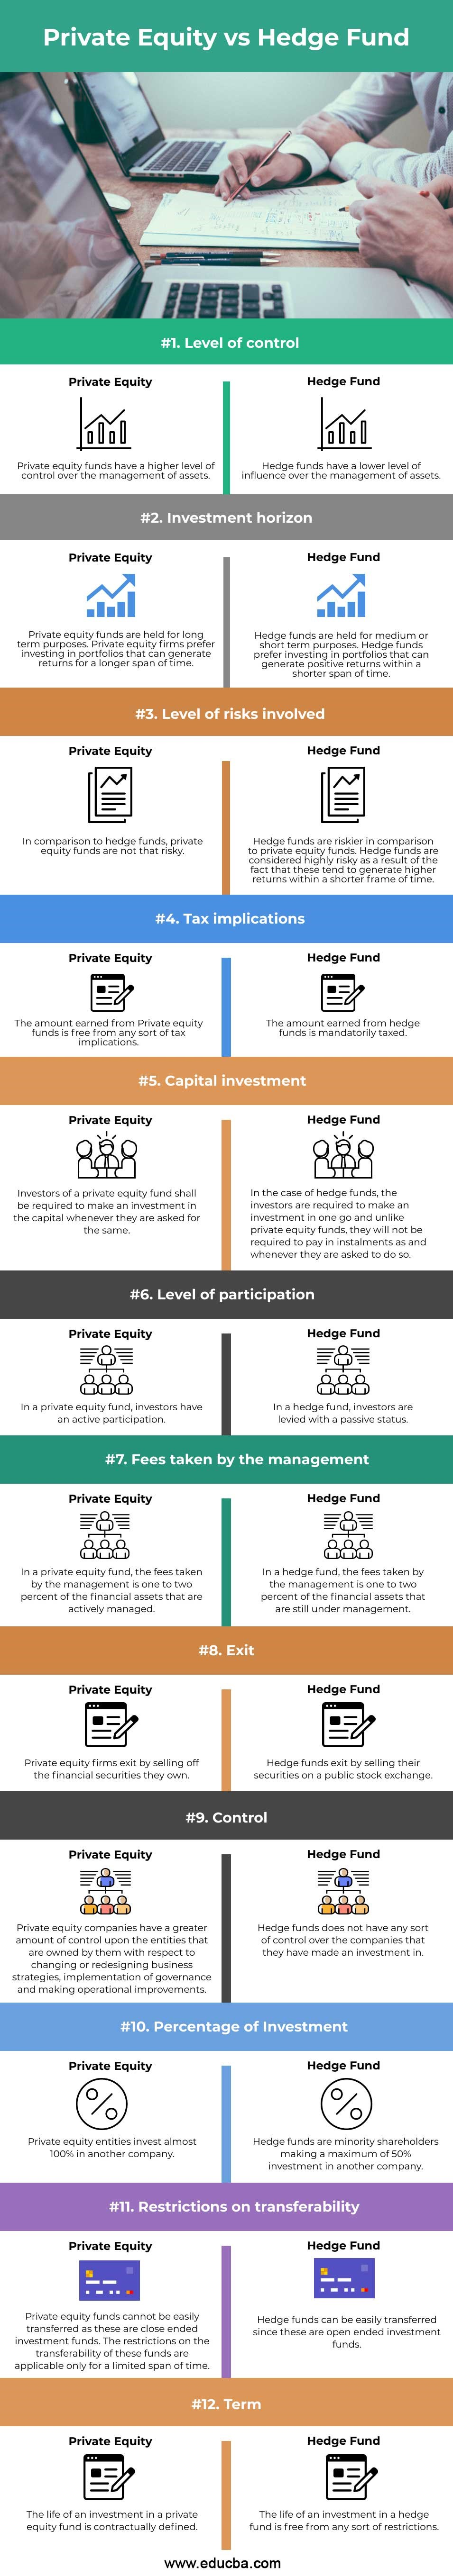 Private-Equity-vs-Hedge-Fund-info